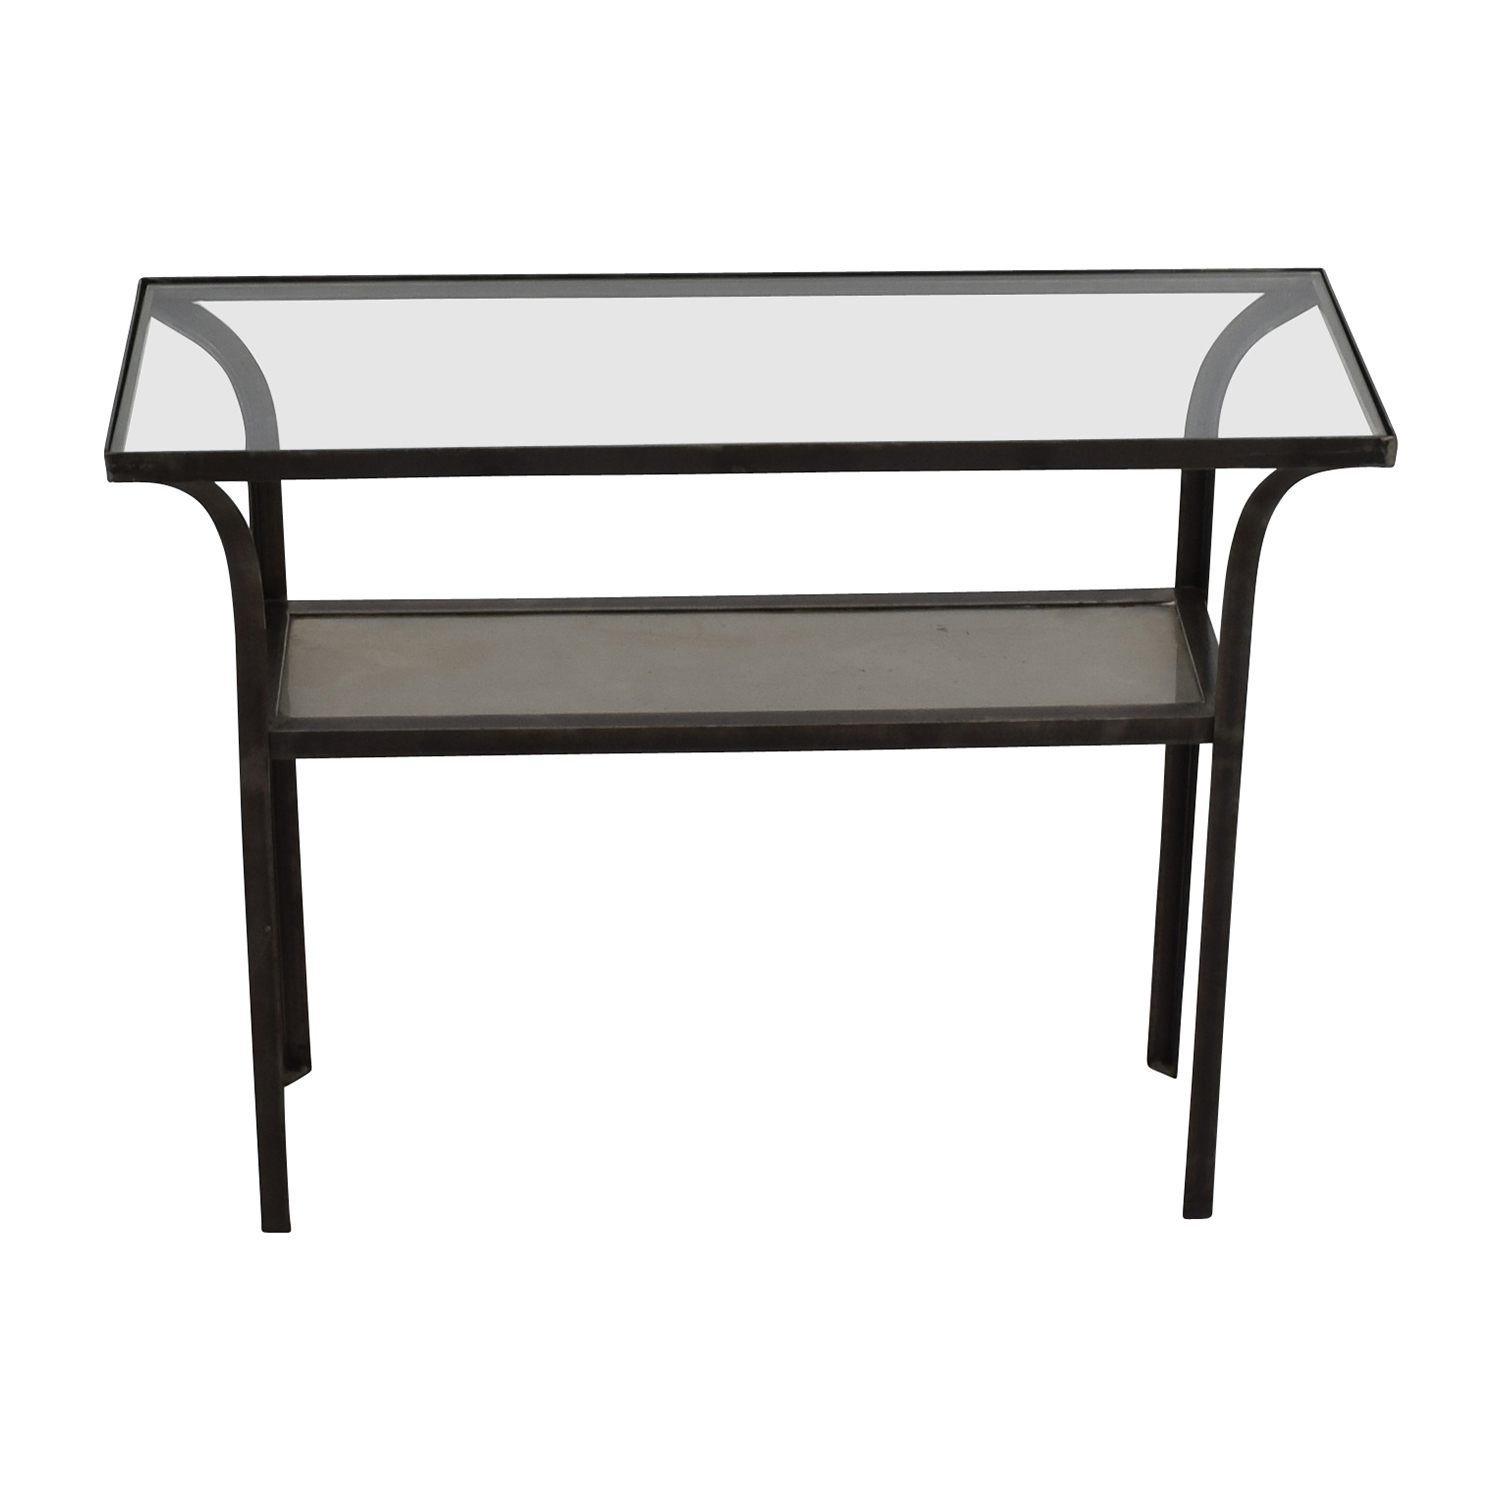 Crate and Barrel Crate & Barrel Black Glass Console Table nyc